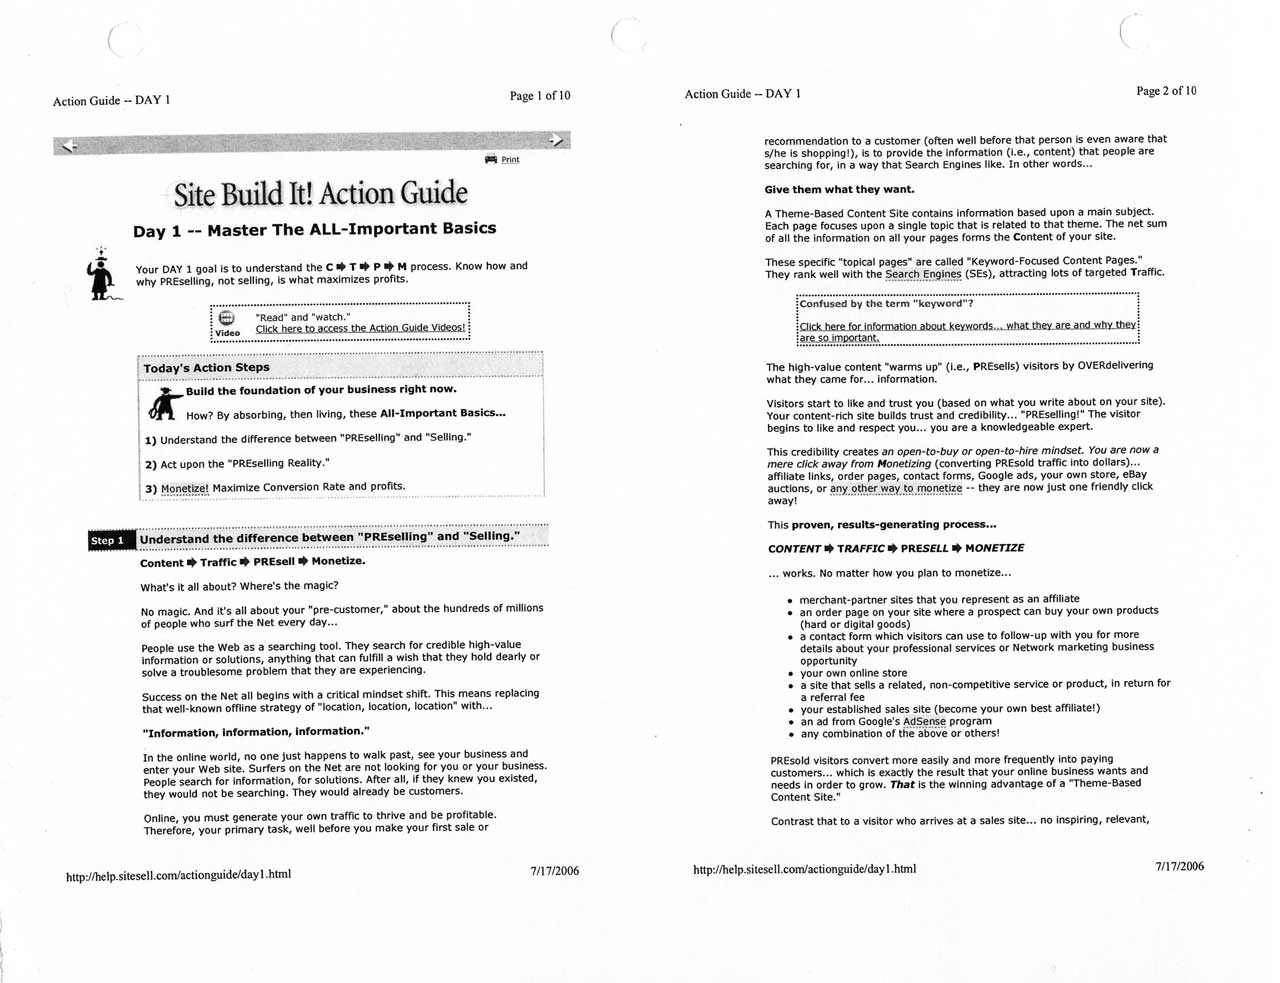 Printout of page 1 of the 10-day Action Guide that got me started on building the World of Waterfalls website through SBI